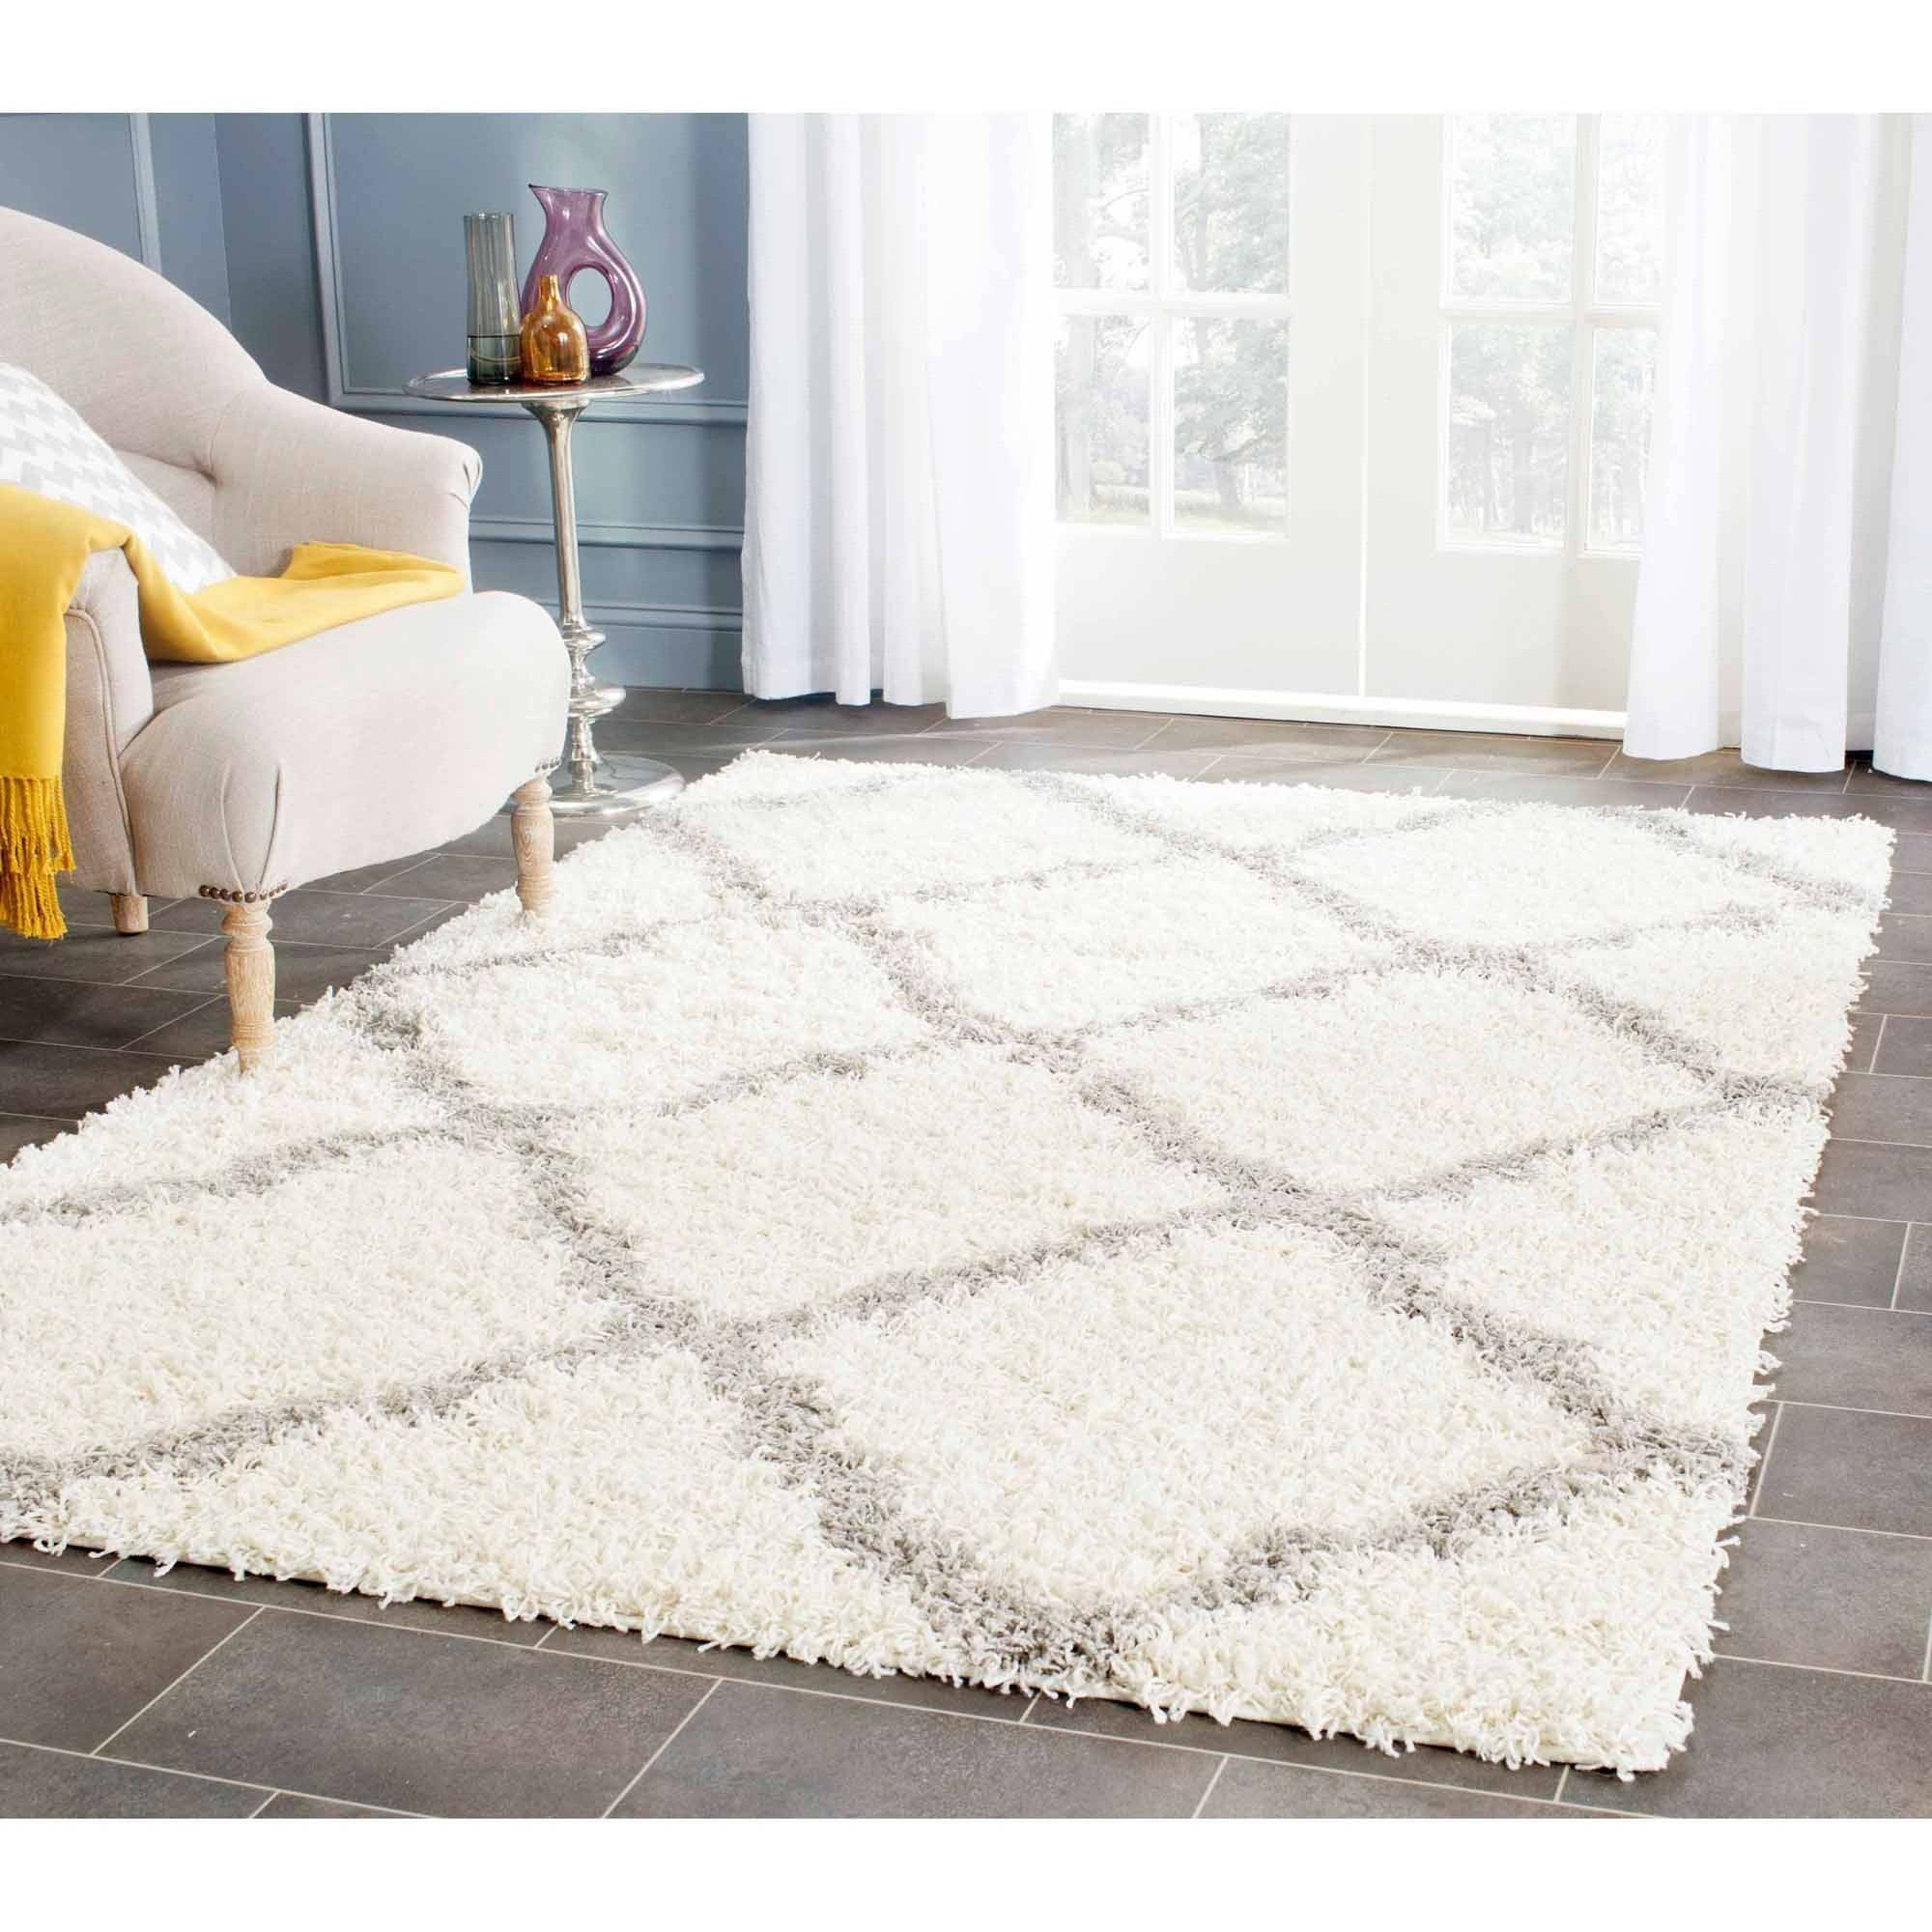 foot cheap decor round all graceful room ikea dining modern adum wayfair walmart stores rugs amazing rug area